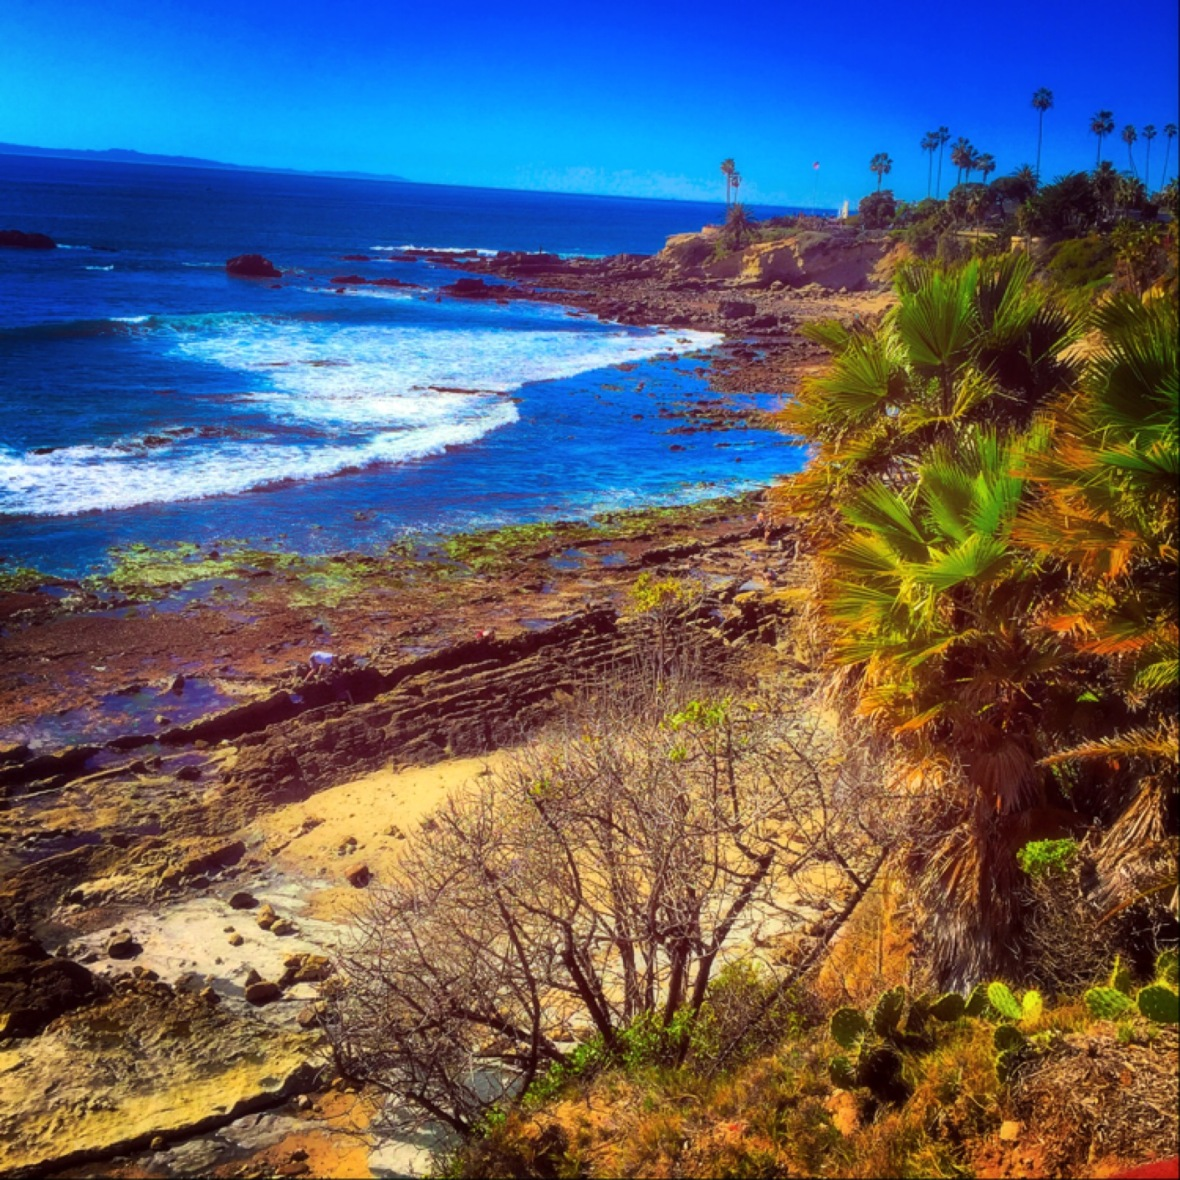 """A View to Cherish"" (Laguna Beach, CA)"